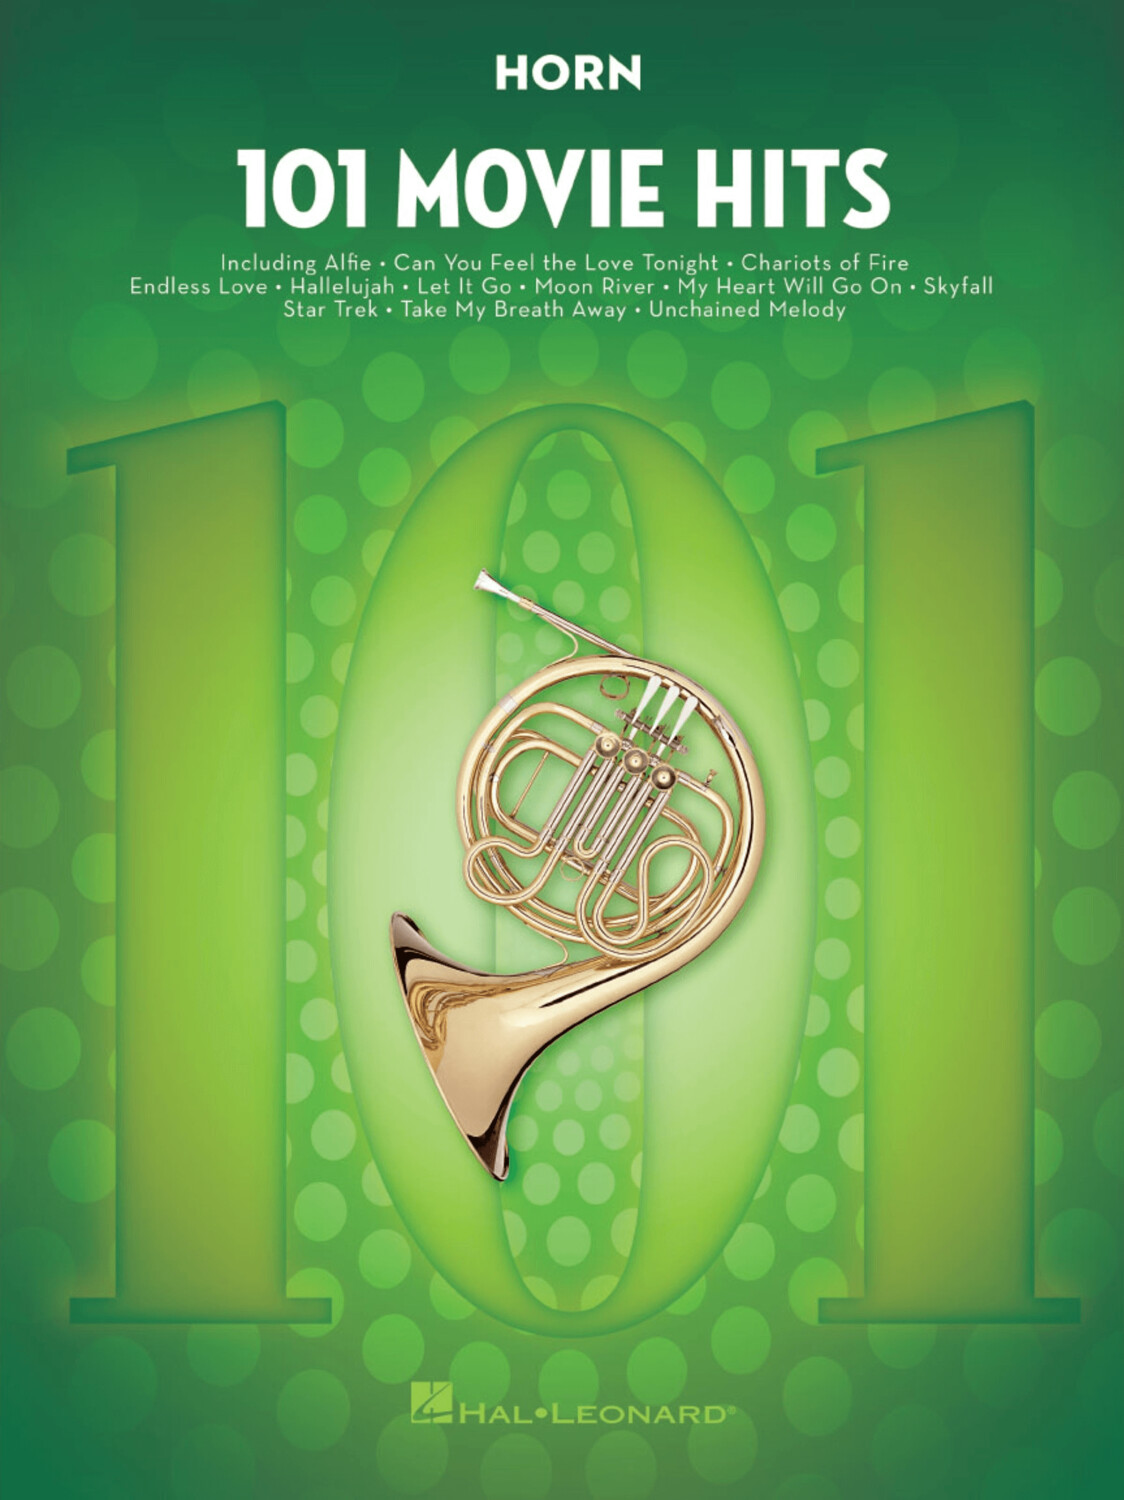 Hal Leonard 101 Movie Hits (Horn)